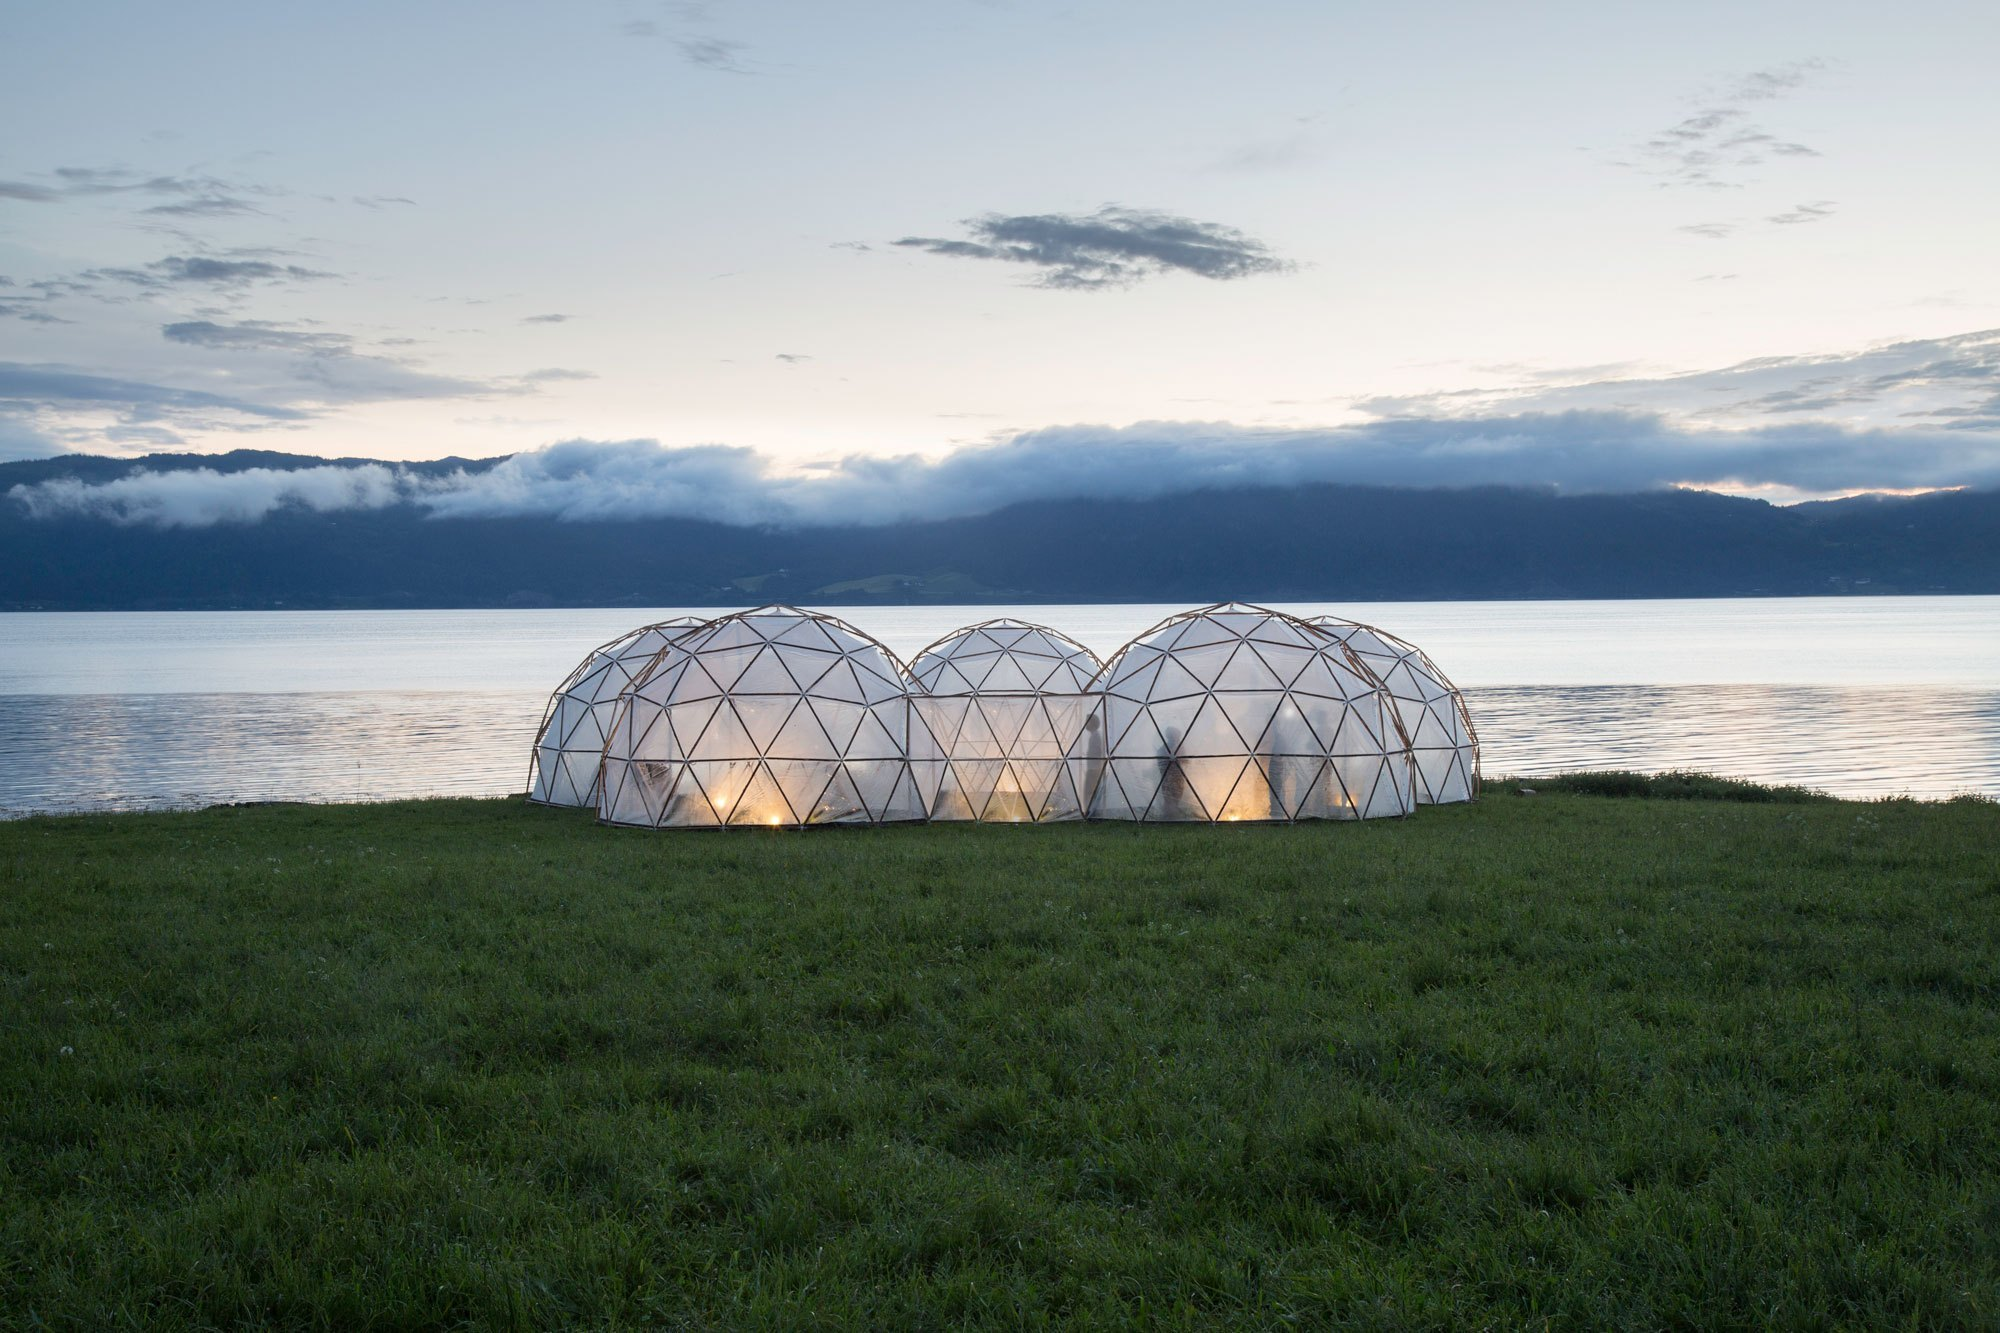 Pollution Pods by Micheal Pinsky